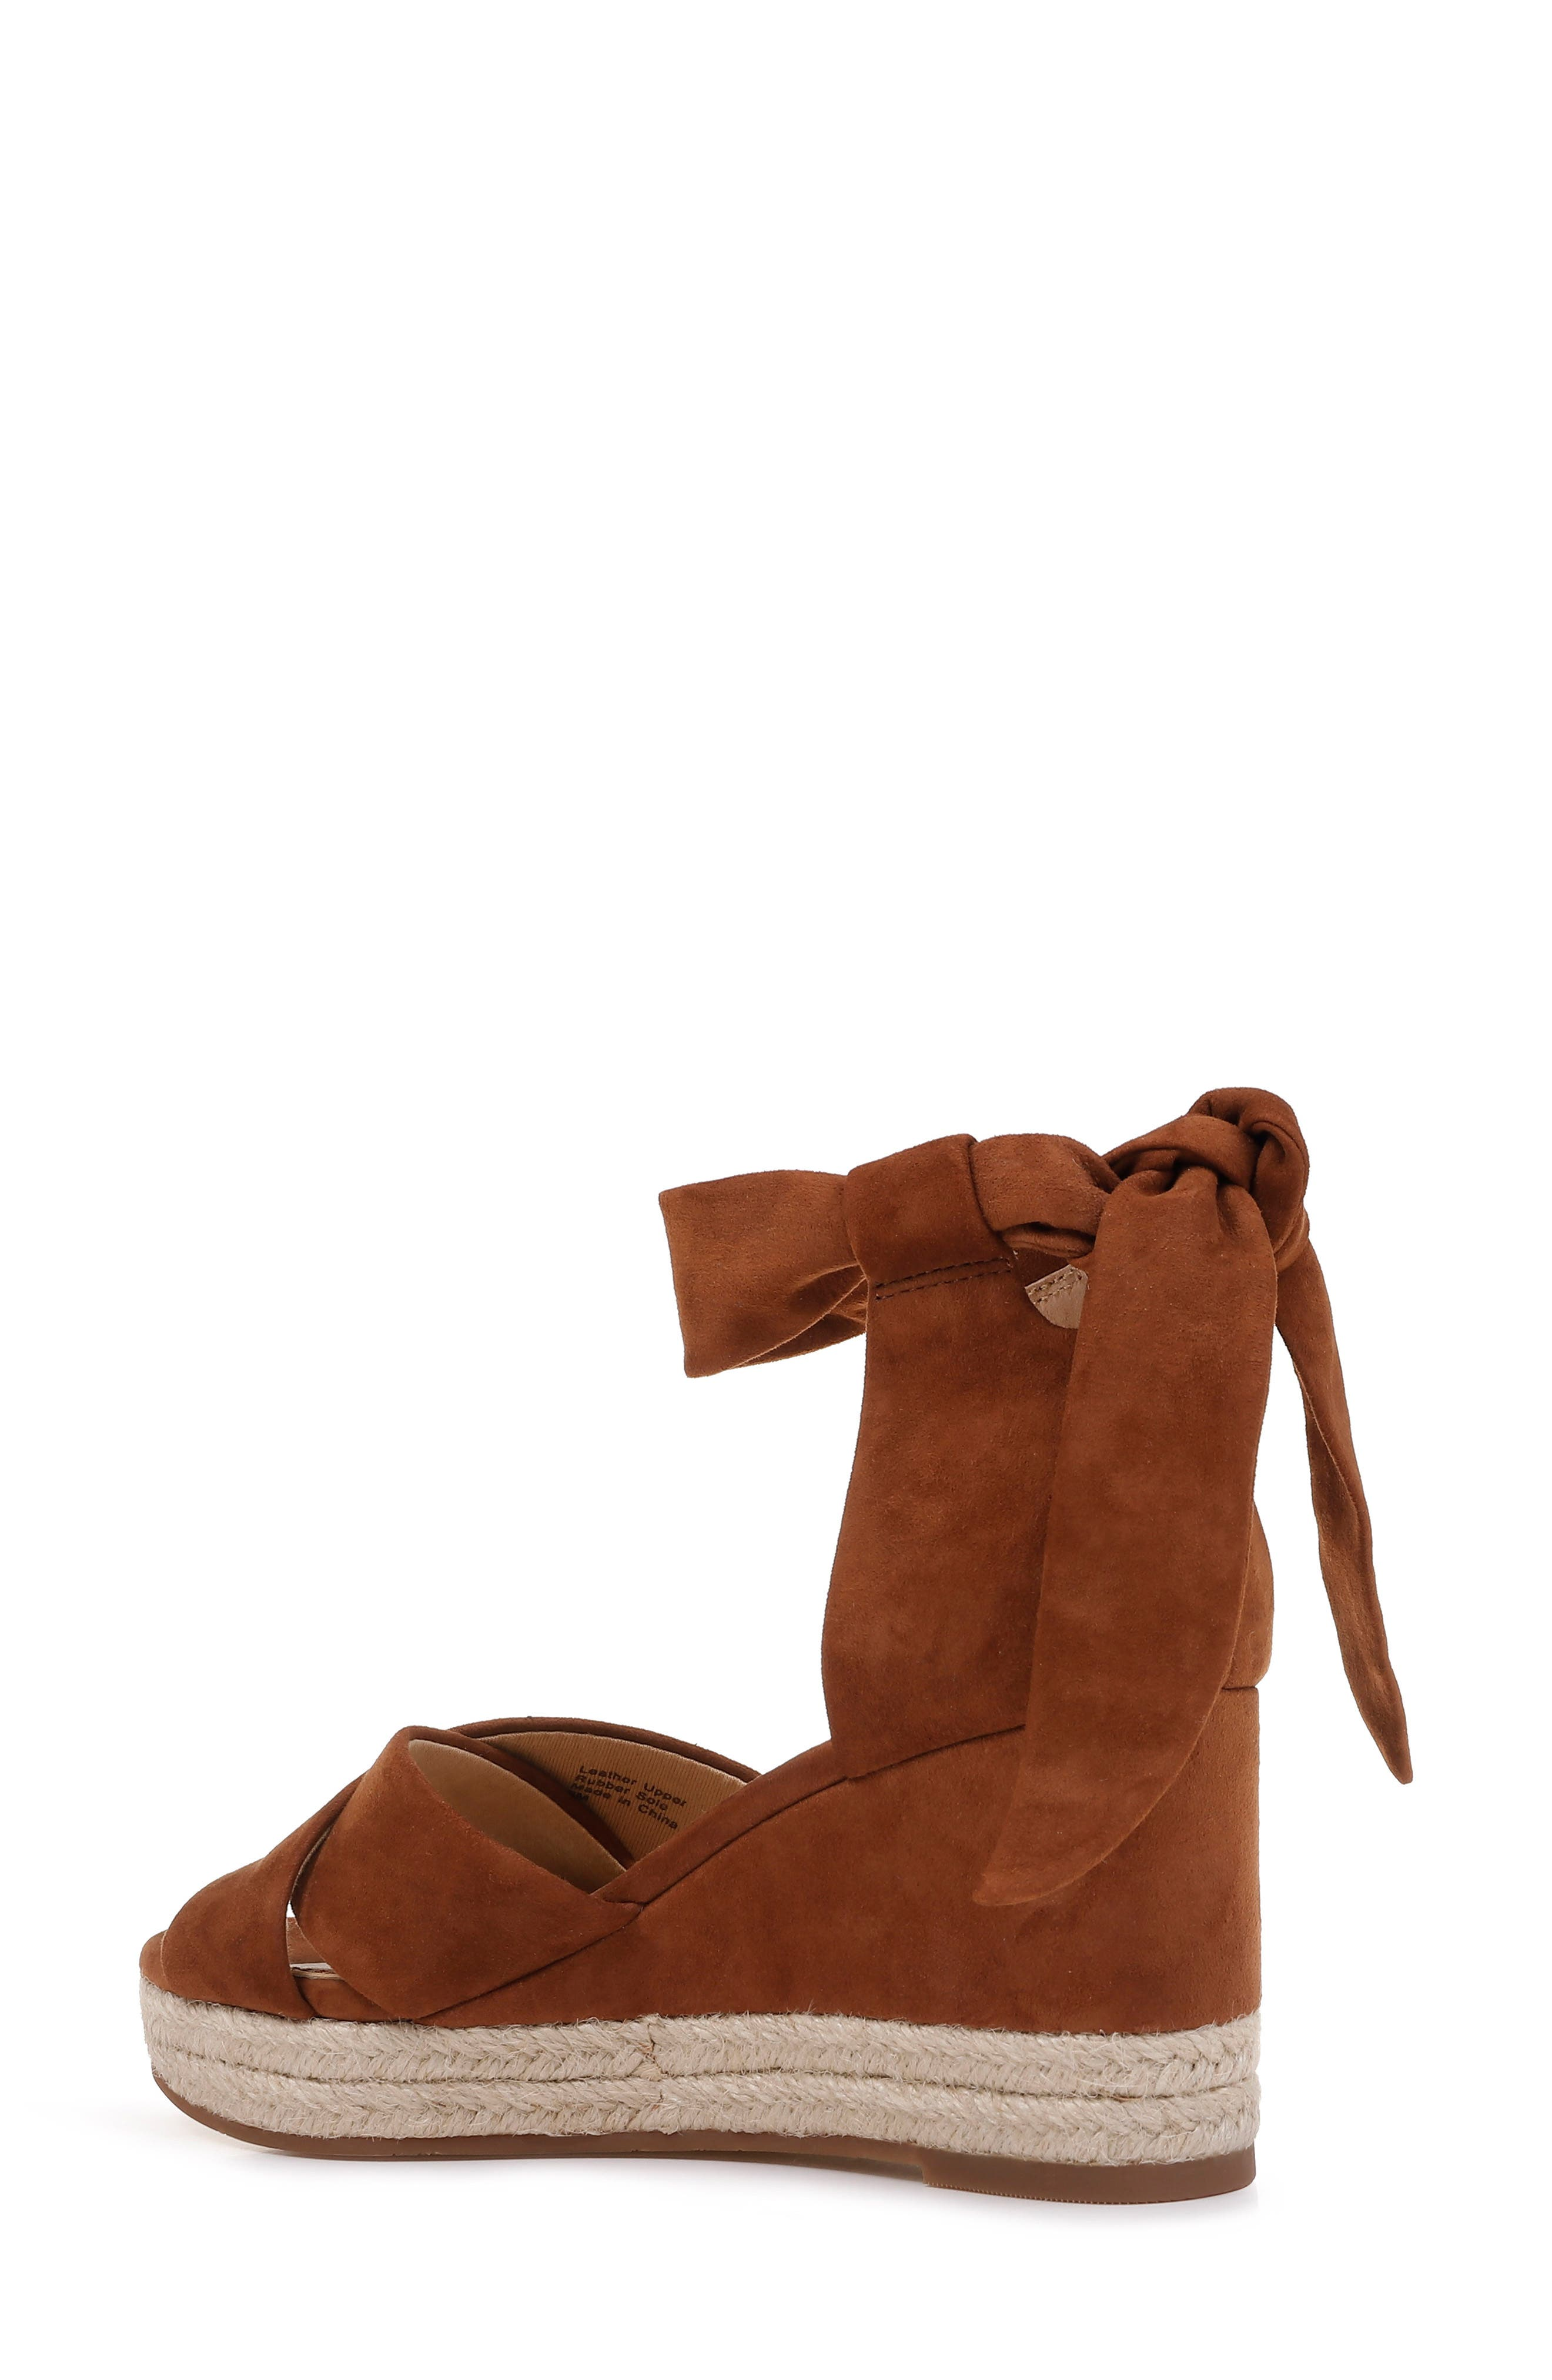 SPLENDID, Terrence Ankle Wrap Wedge Sandal, Alternate thumbnail 2, color, CHESTNUT SUEDE